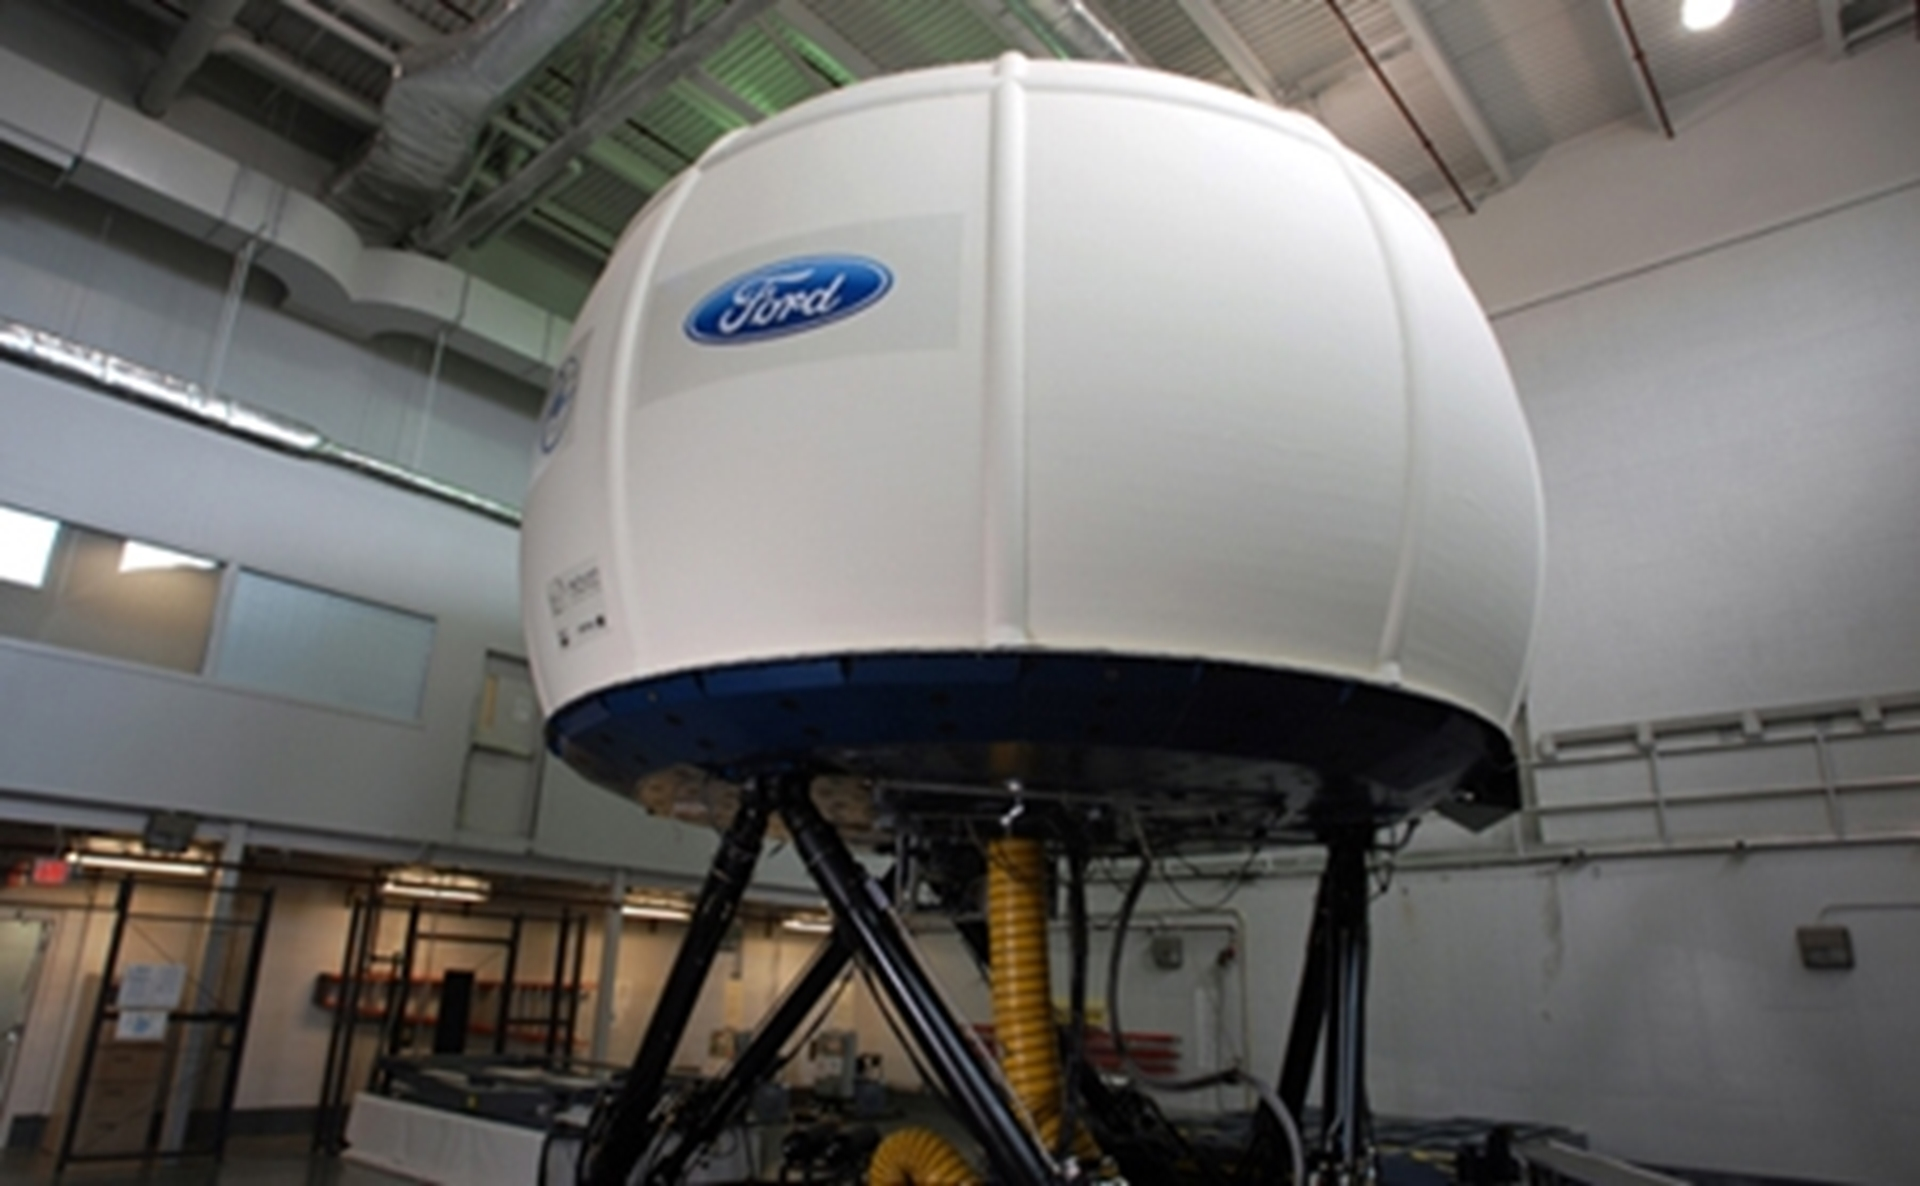 ford upgrades virtual reality simulator to help develop future safety technologies  driver aids